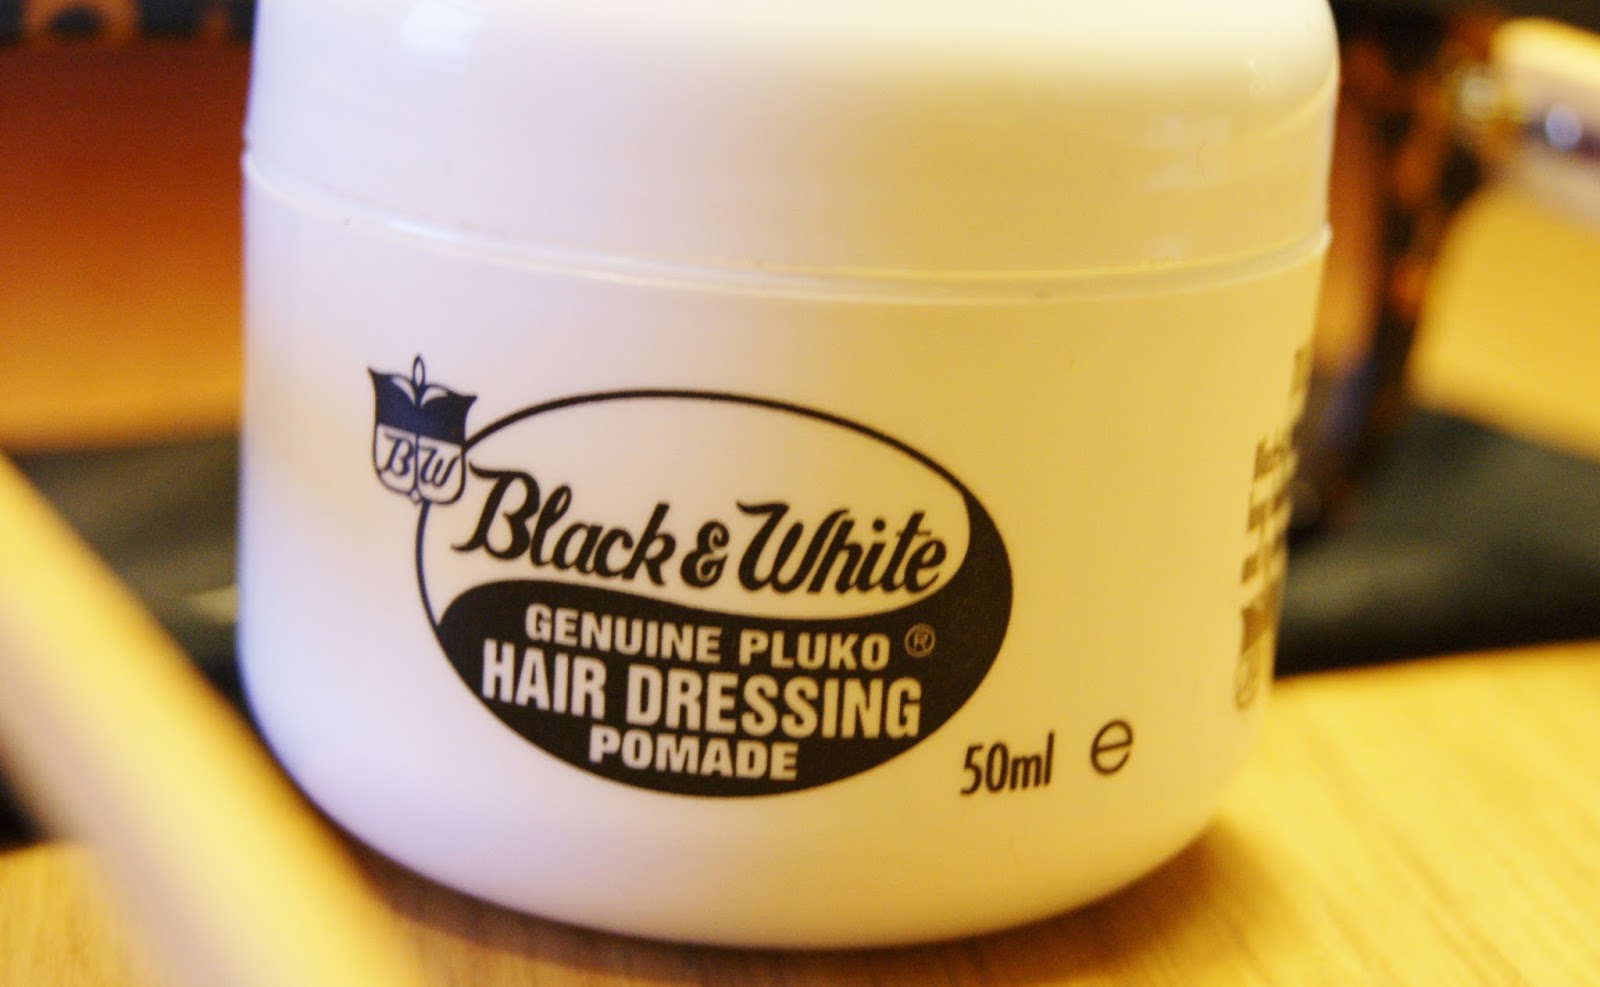 Black & White Pluko Hair Dressing Pomade Review